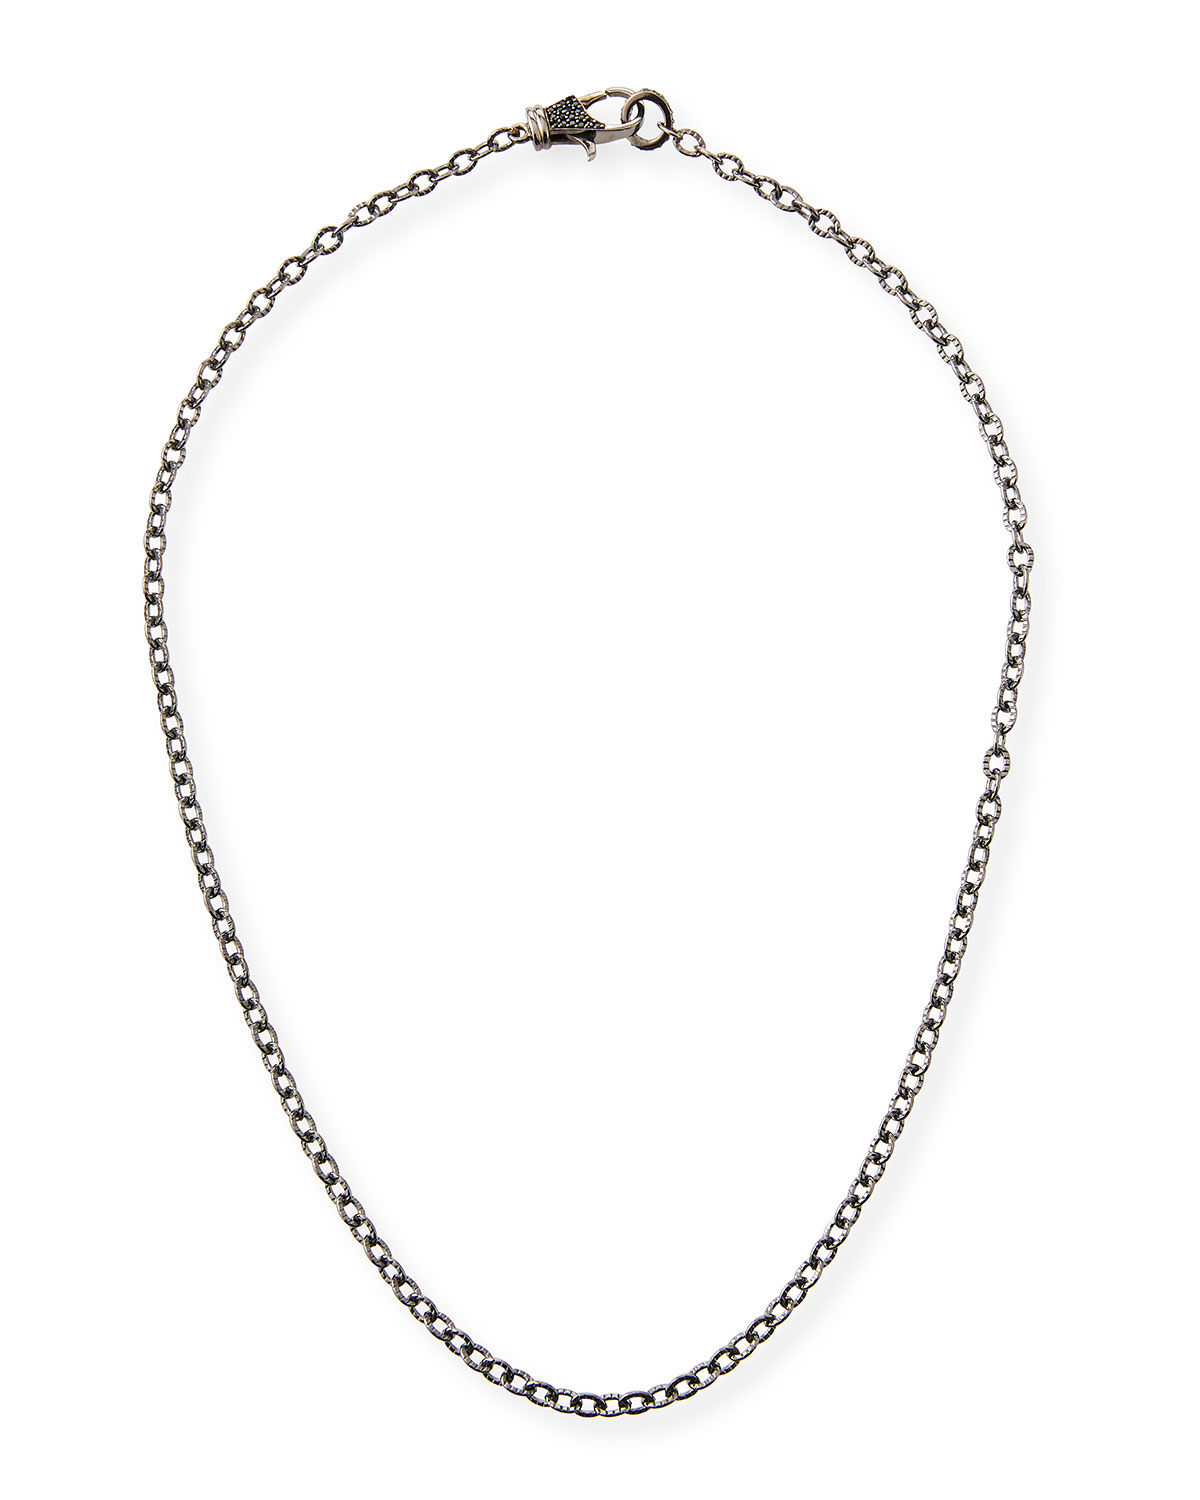 Rhodium-Plated Sterling Silver Chain Necklace with Spinel Clasp